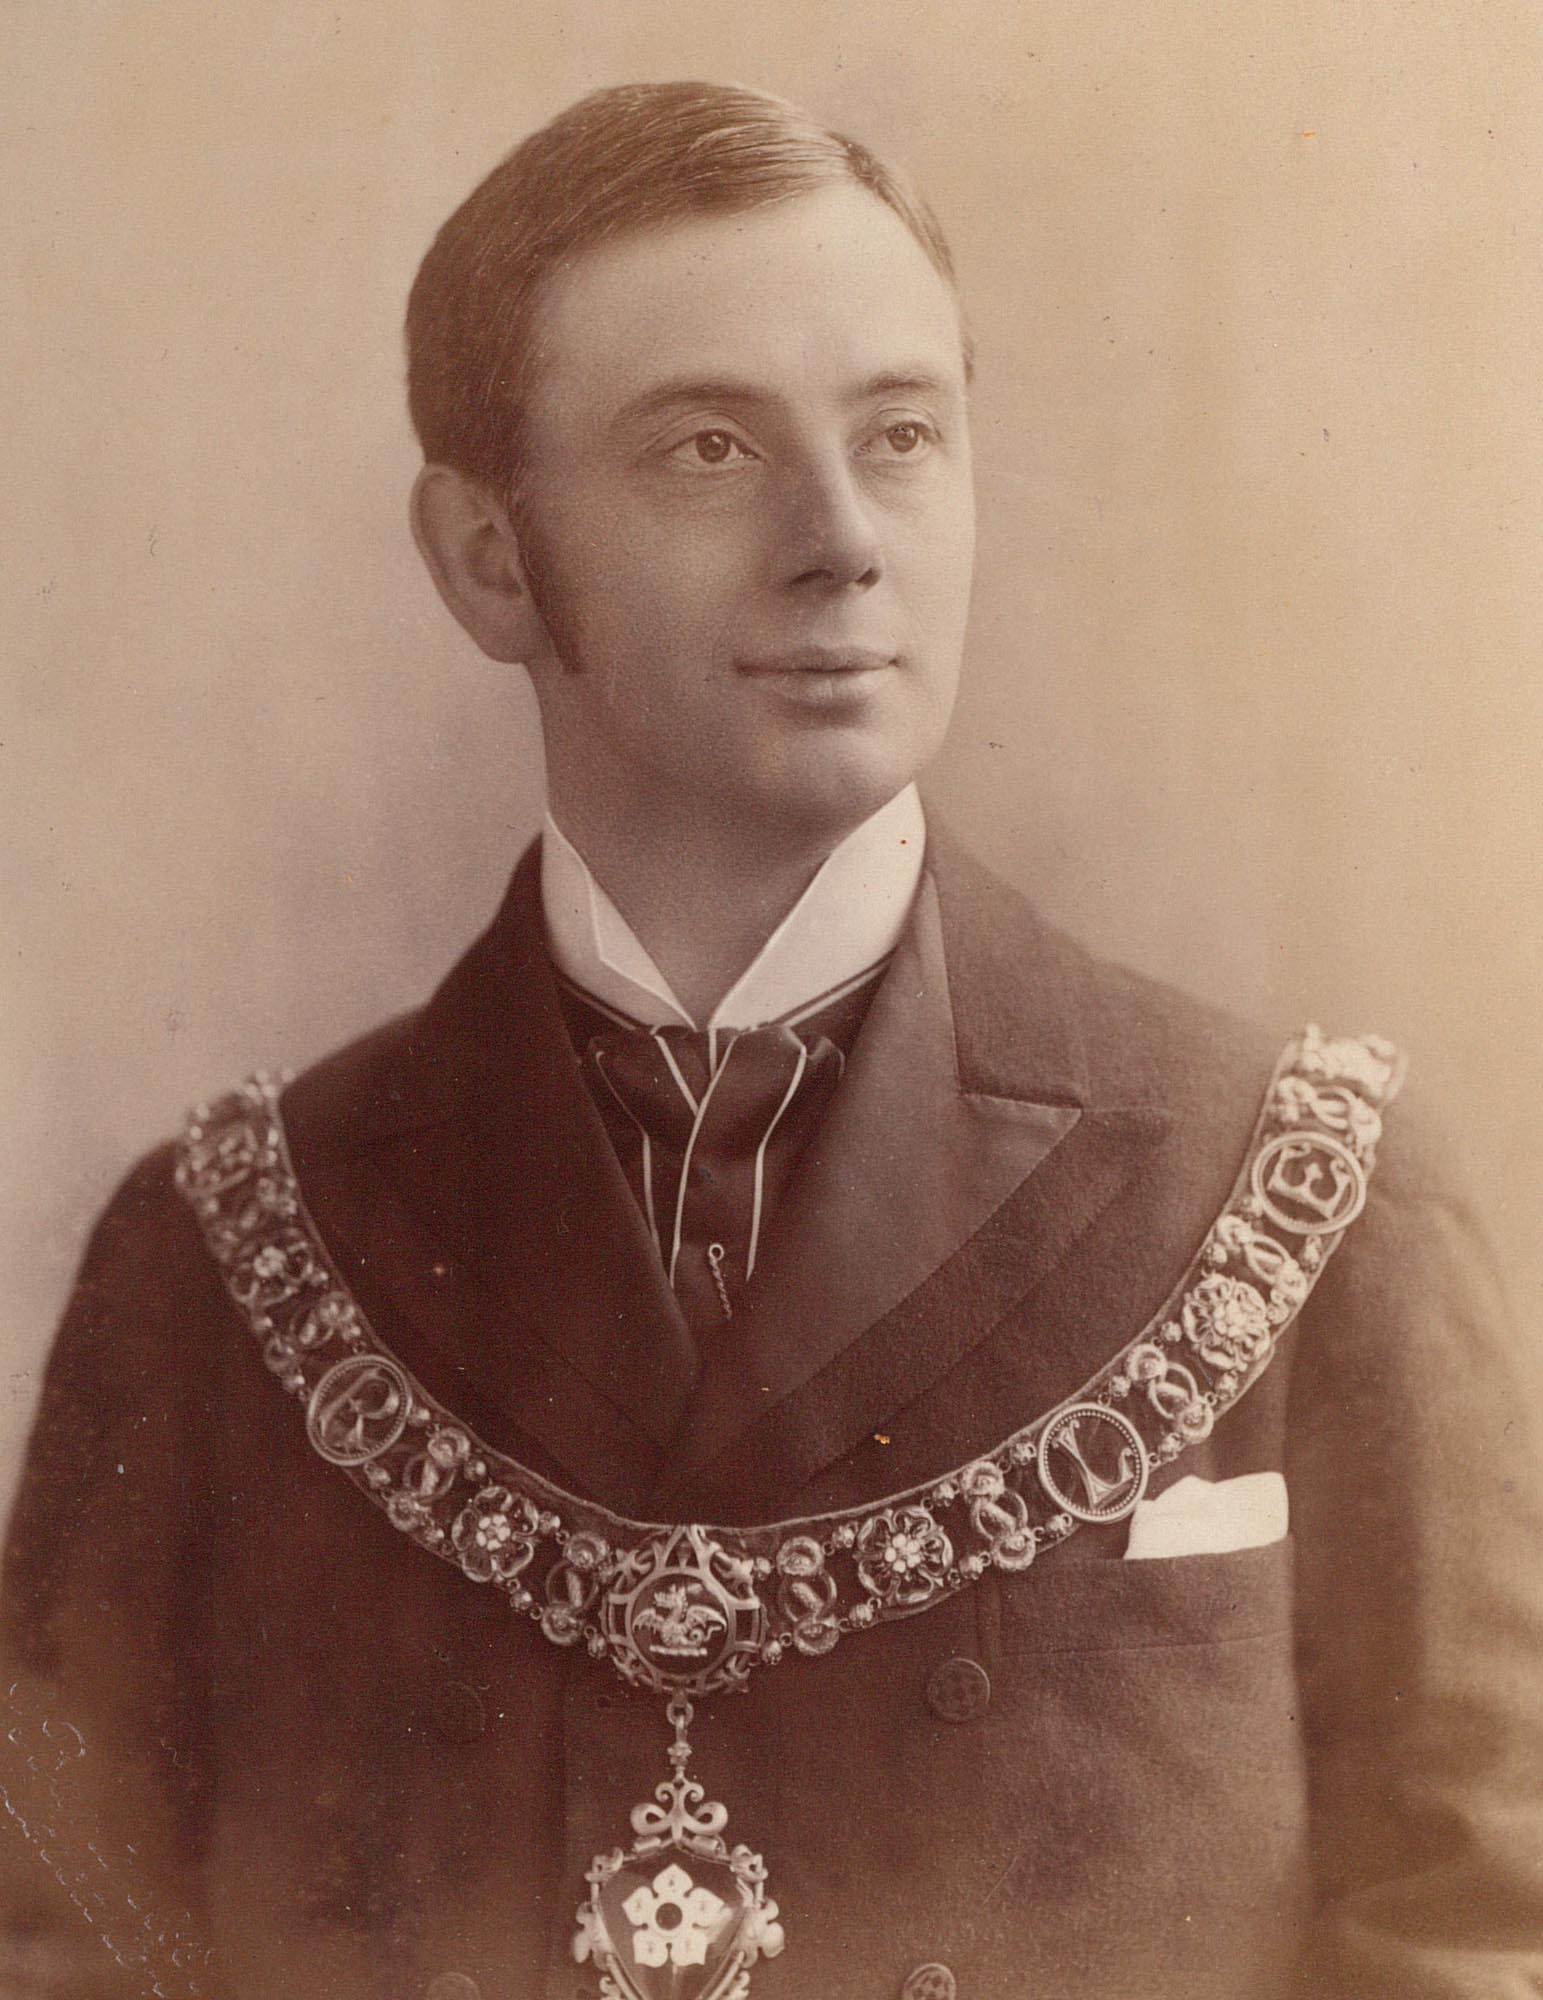 Arthur Wakerley pictured in the Leicester Mayoral Chains -